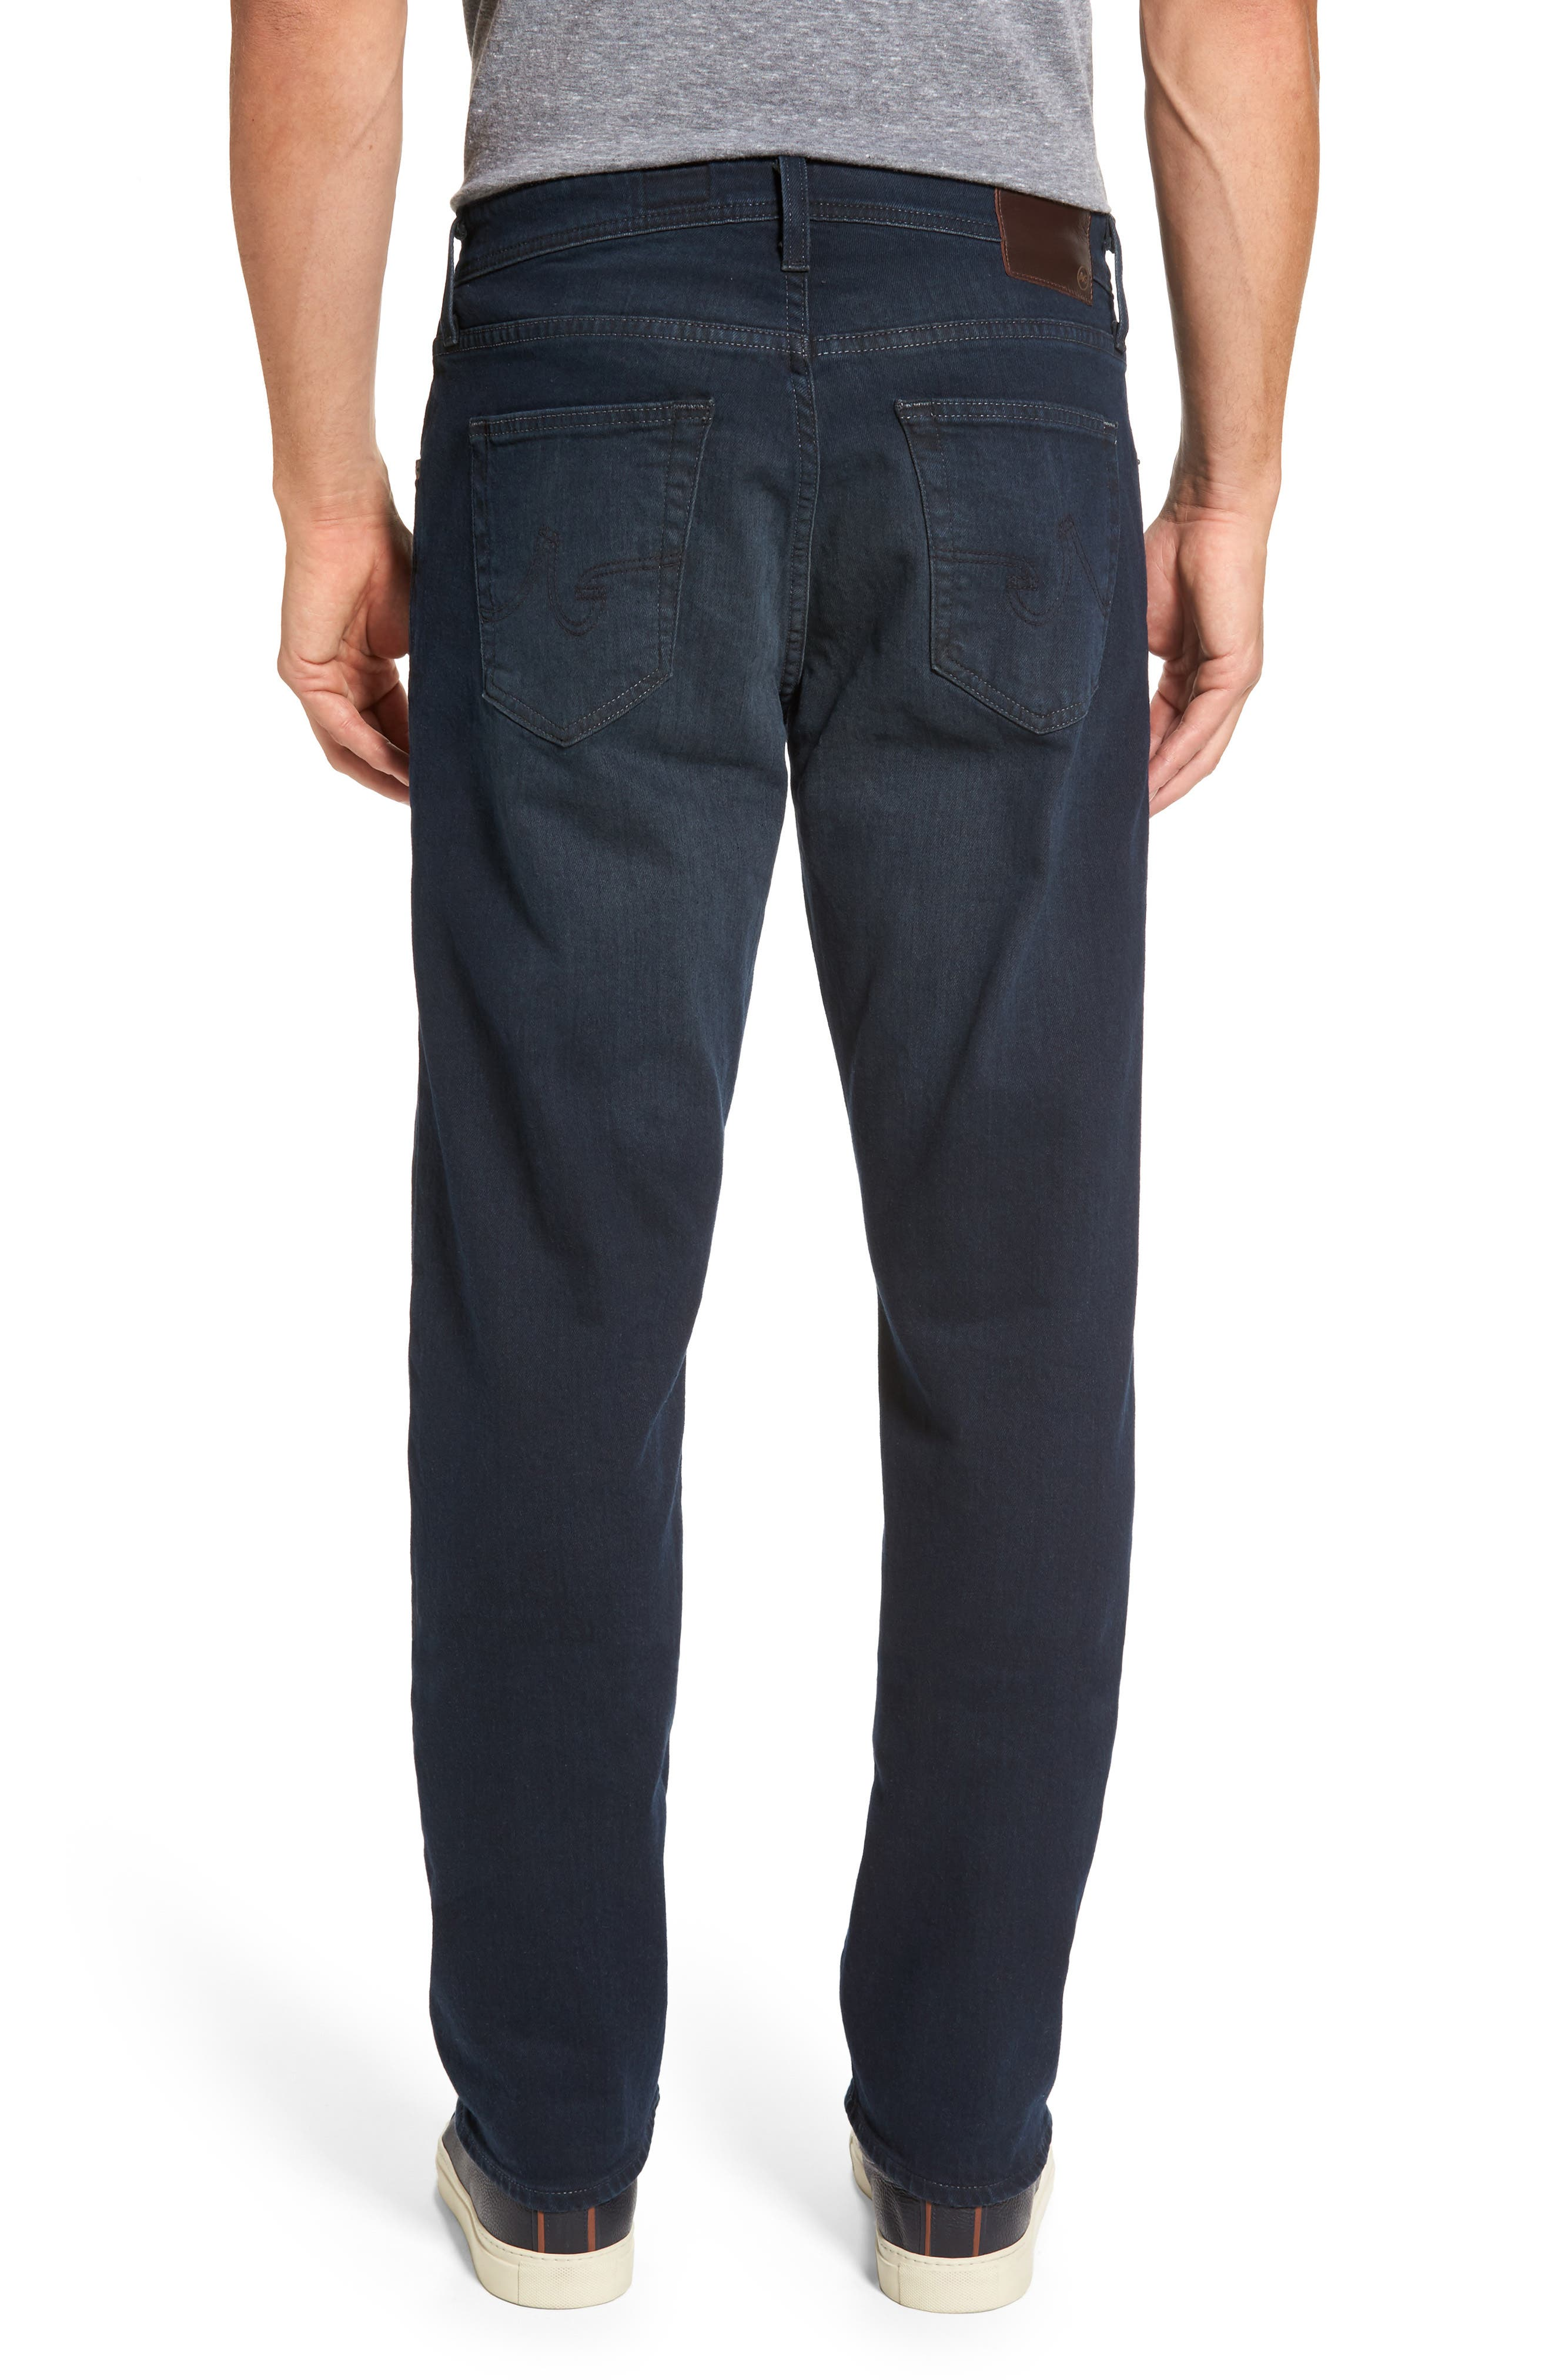 Ives Straight Fit Jeans,                             Alternate thumbnail 2, color,                             433